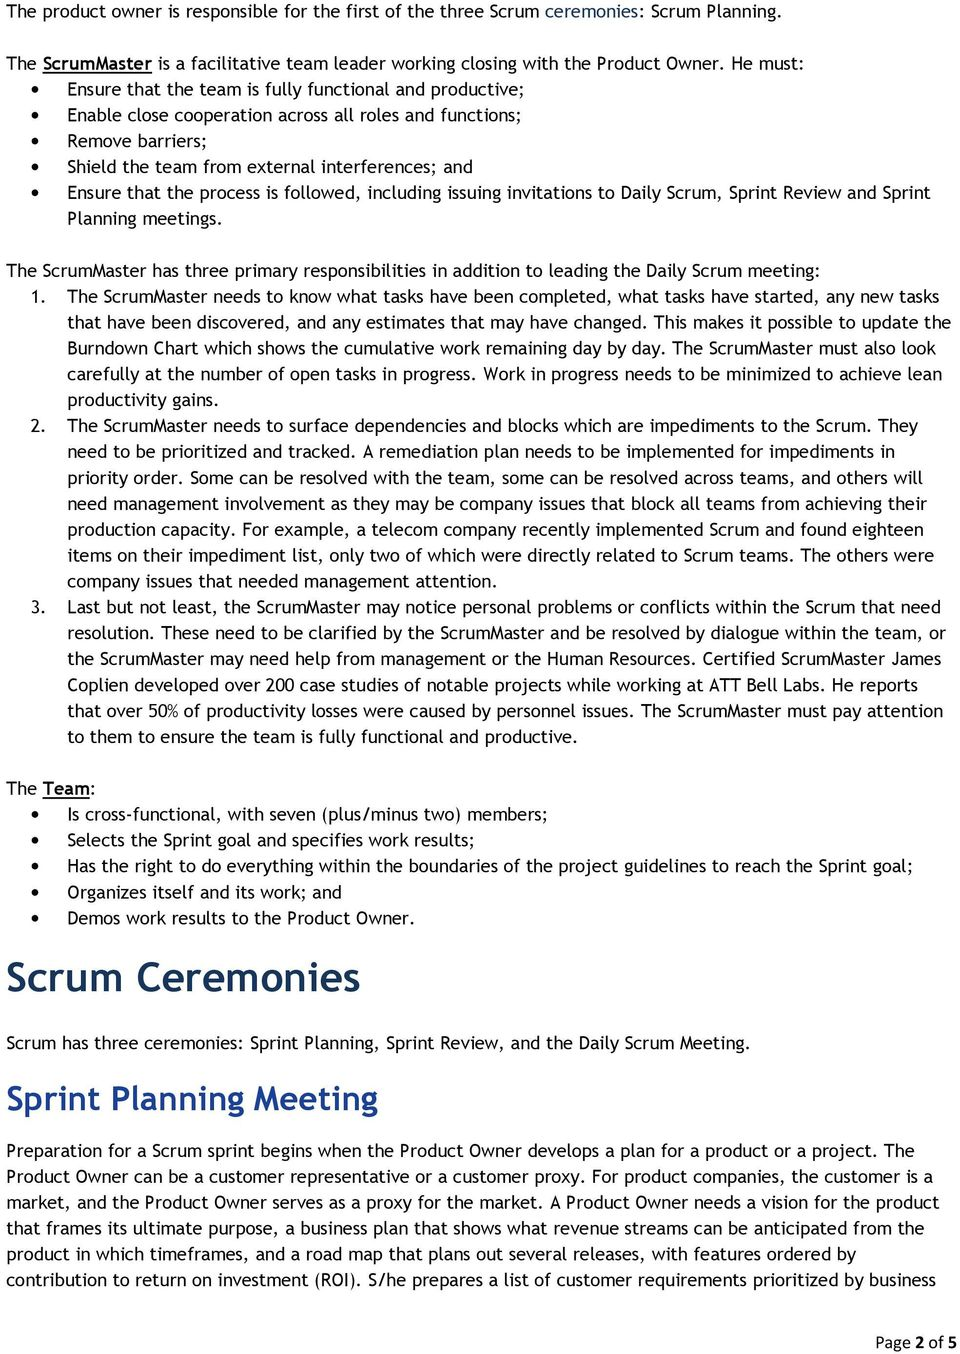 that the process is followed, including issuing invitations to Daily Scrum, Sprint Review and Sprint Planning meetings.